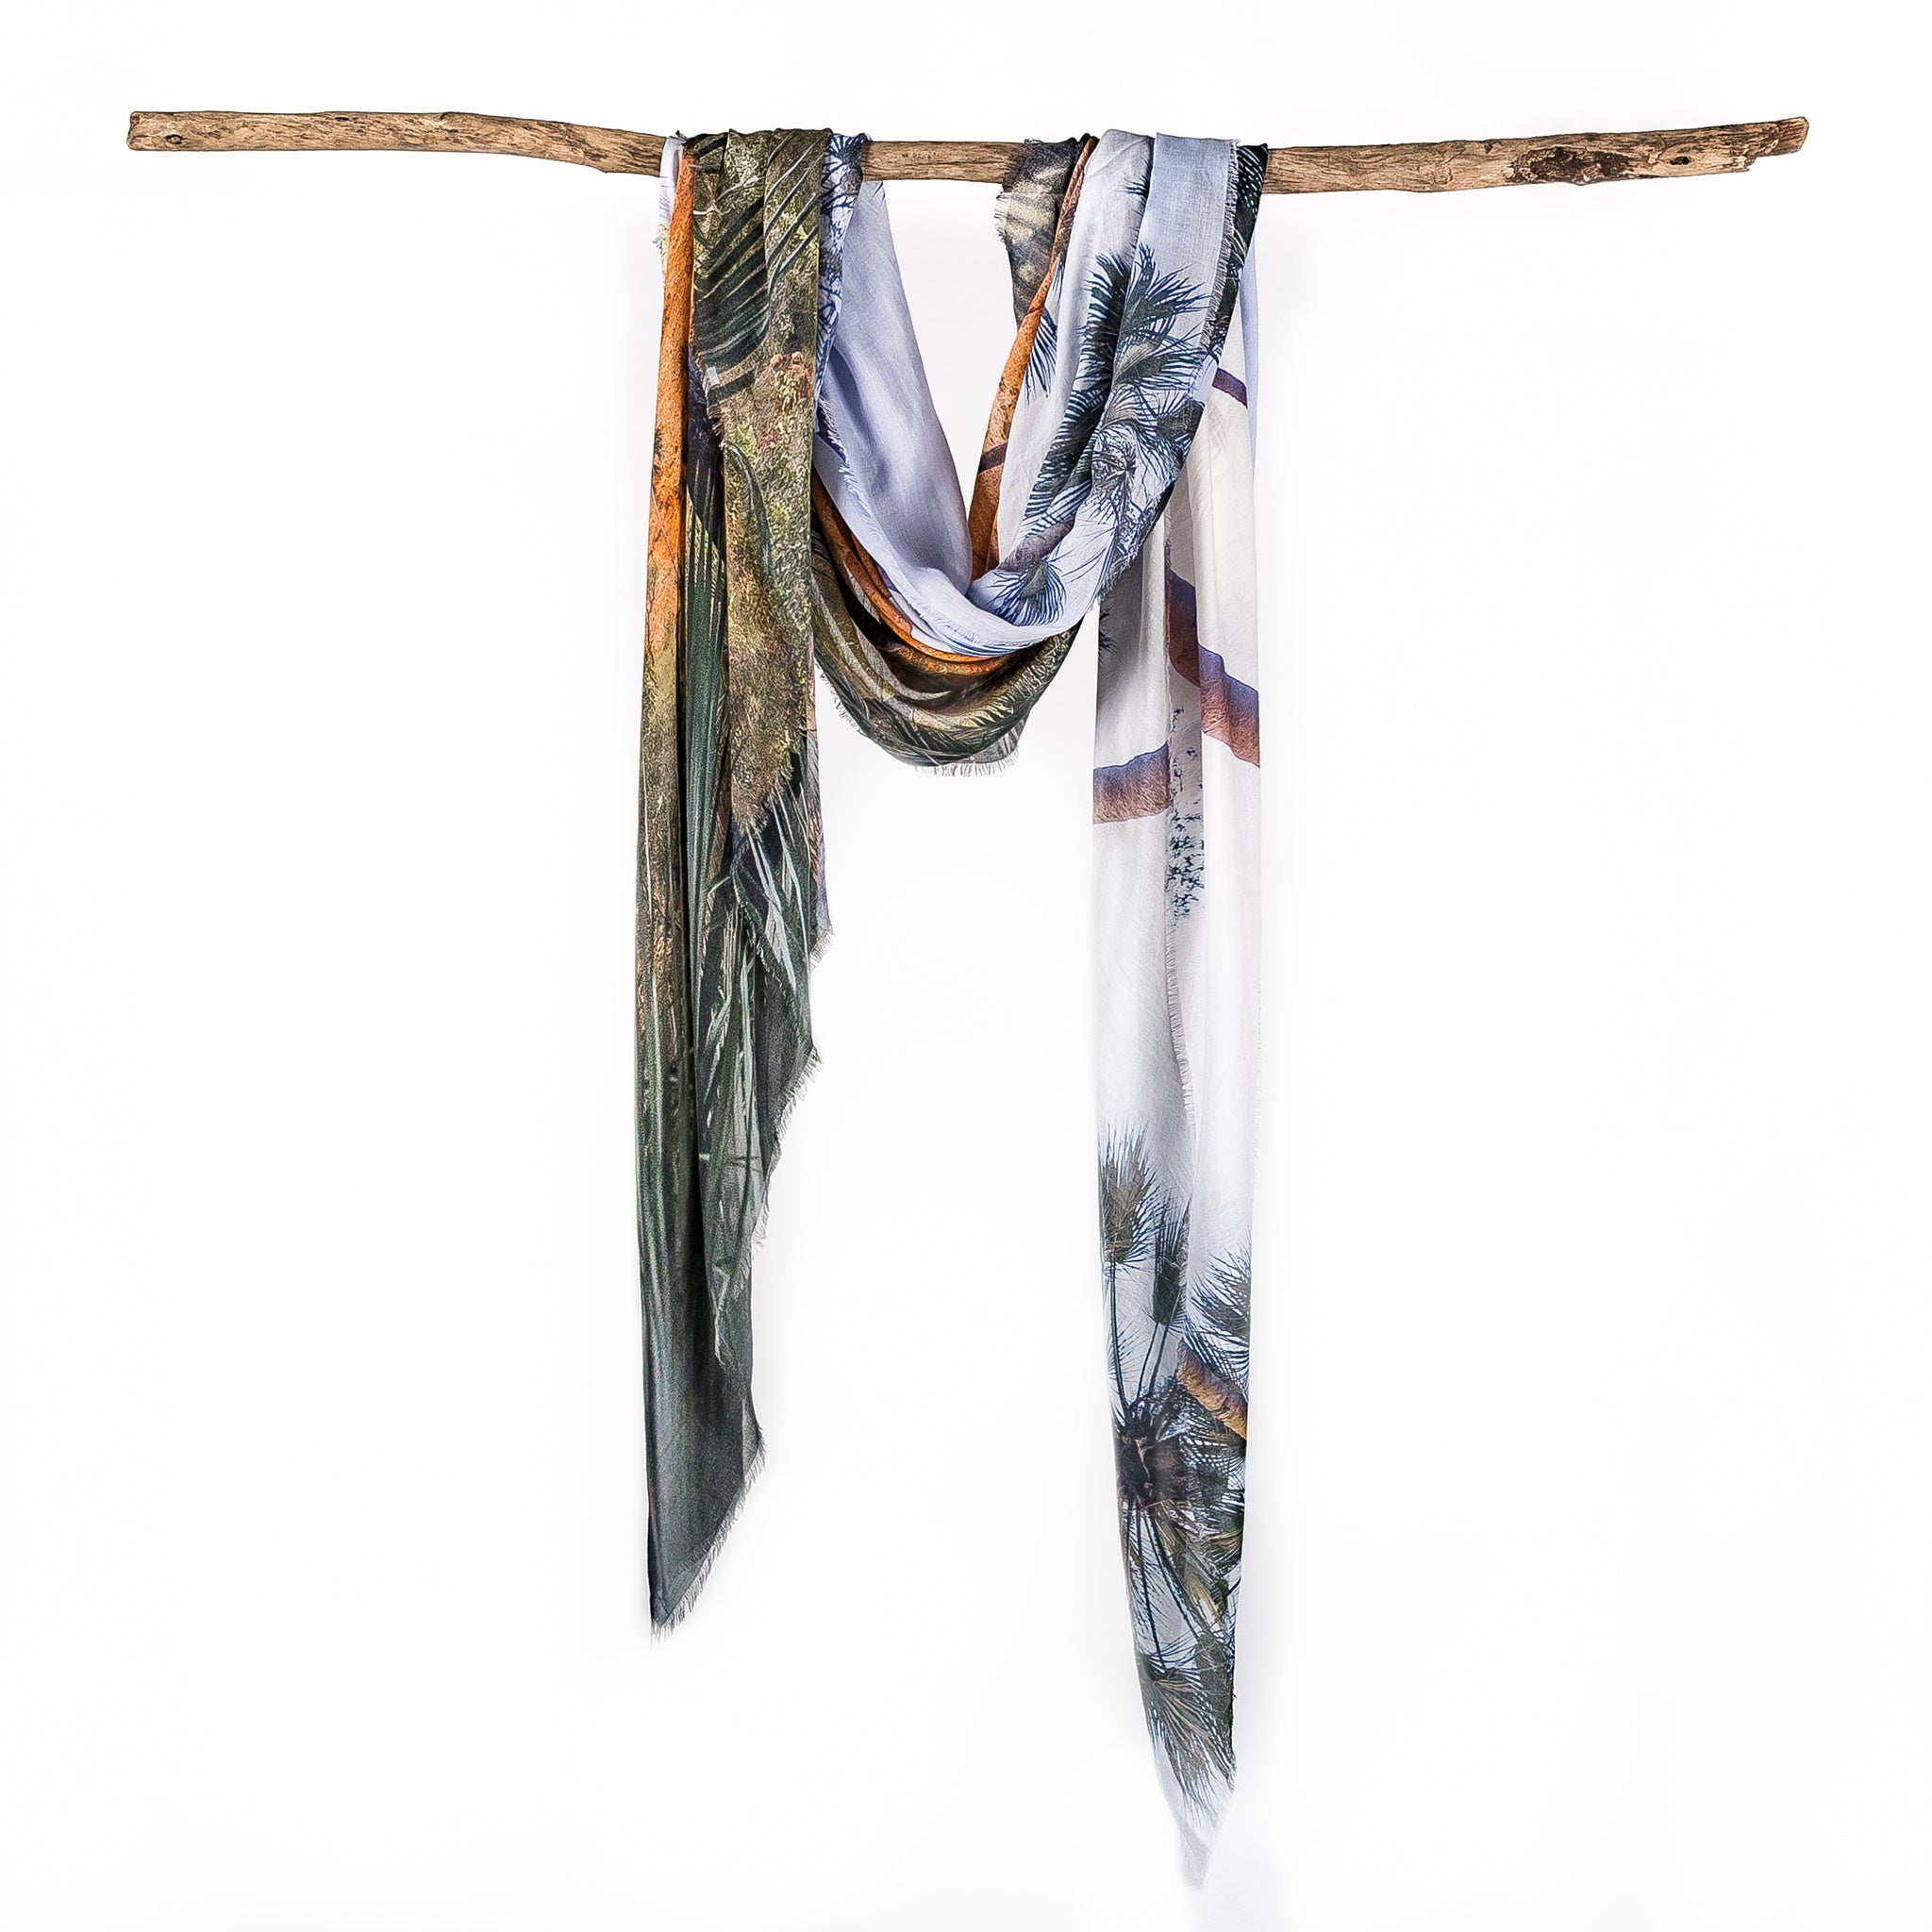 Oasis Scarf (Bungles Bungles) // ONE LEFT